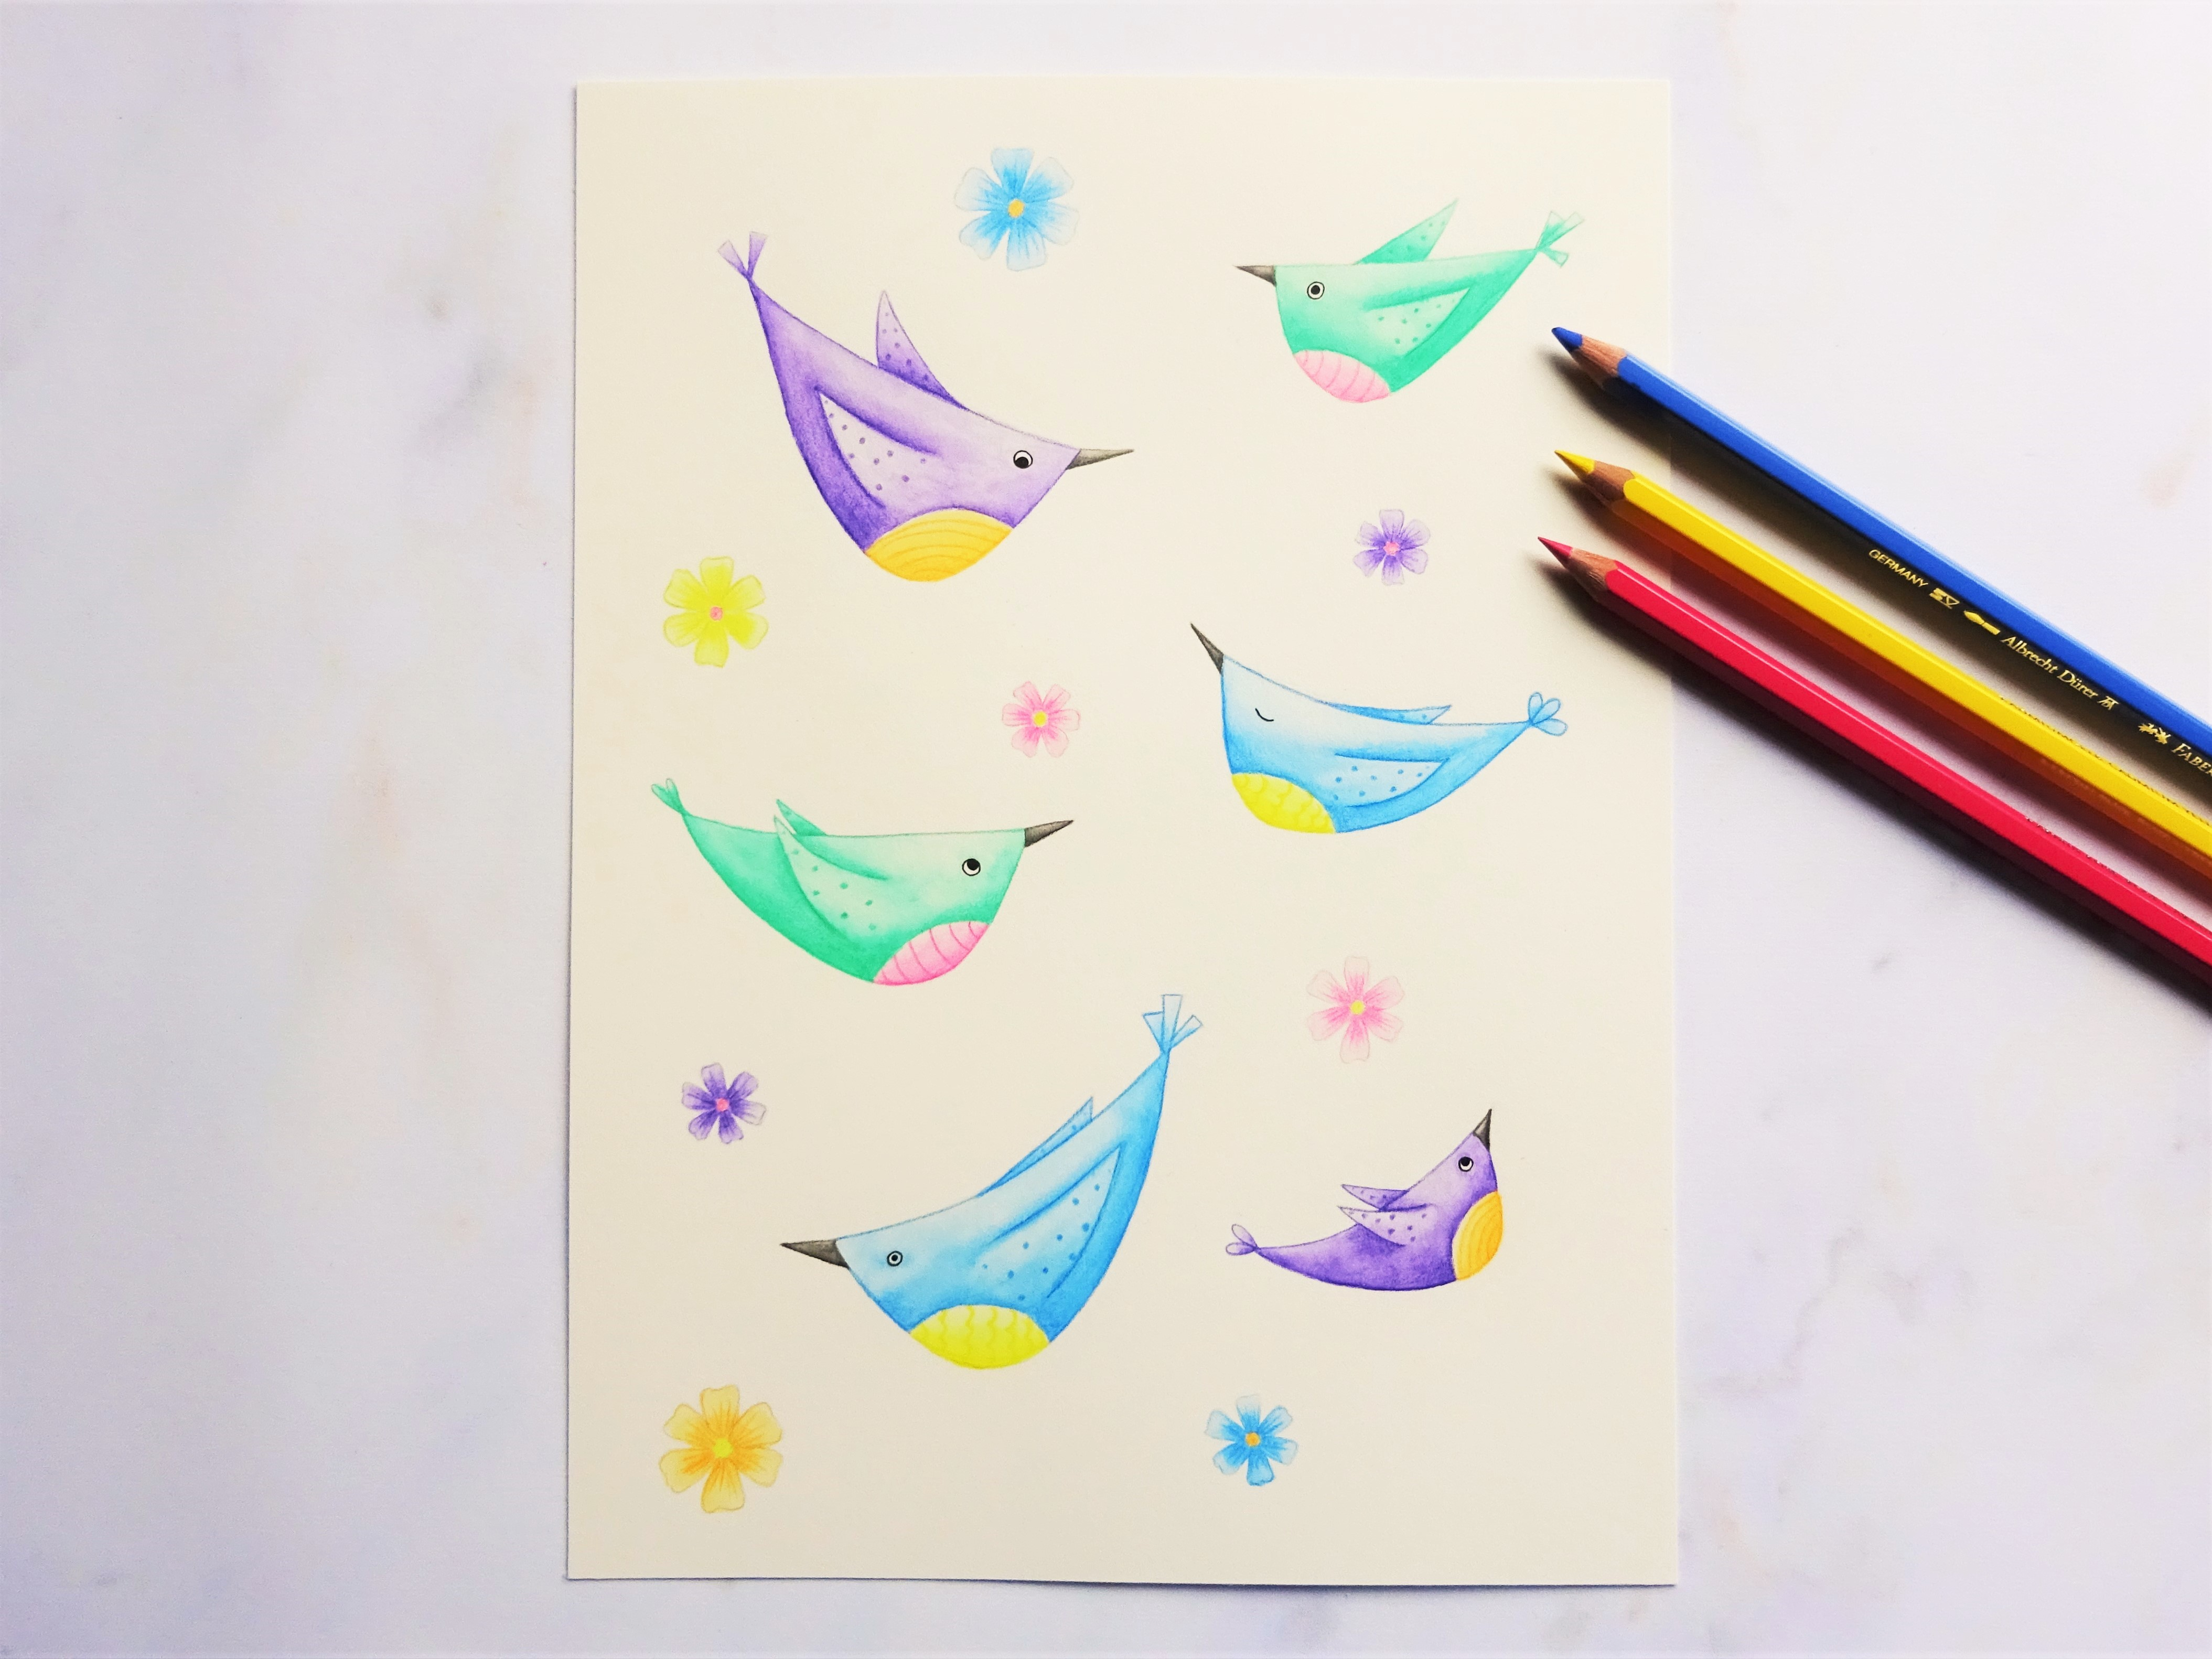 A watercolour pencil illustration showing quirky colourful birds and flowers